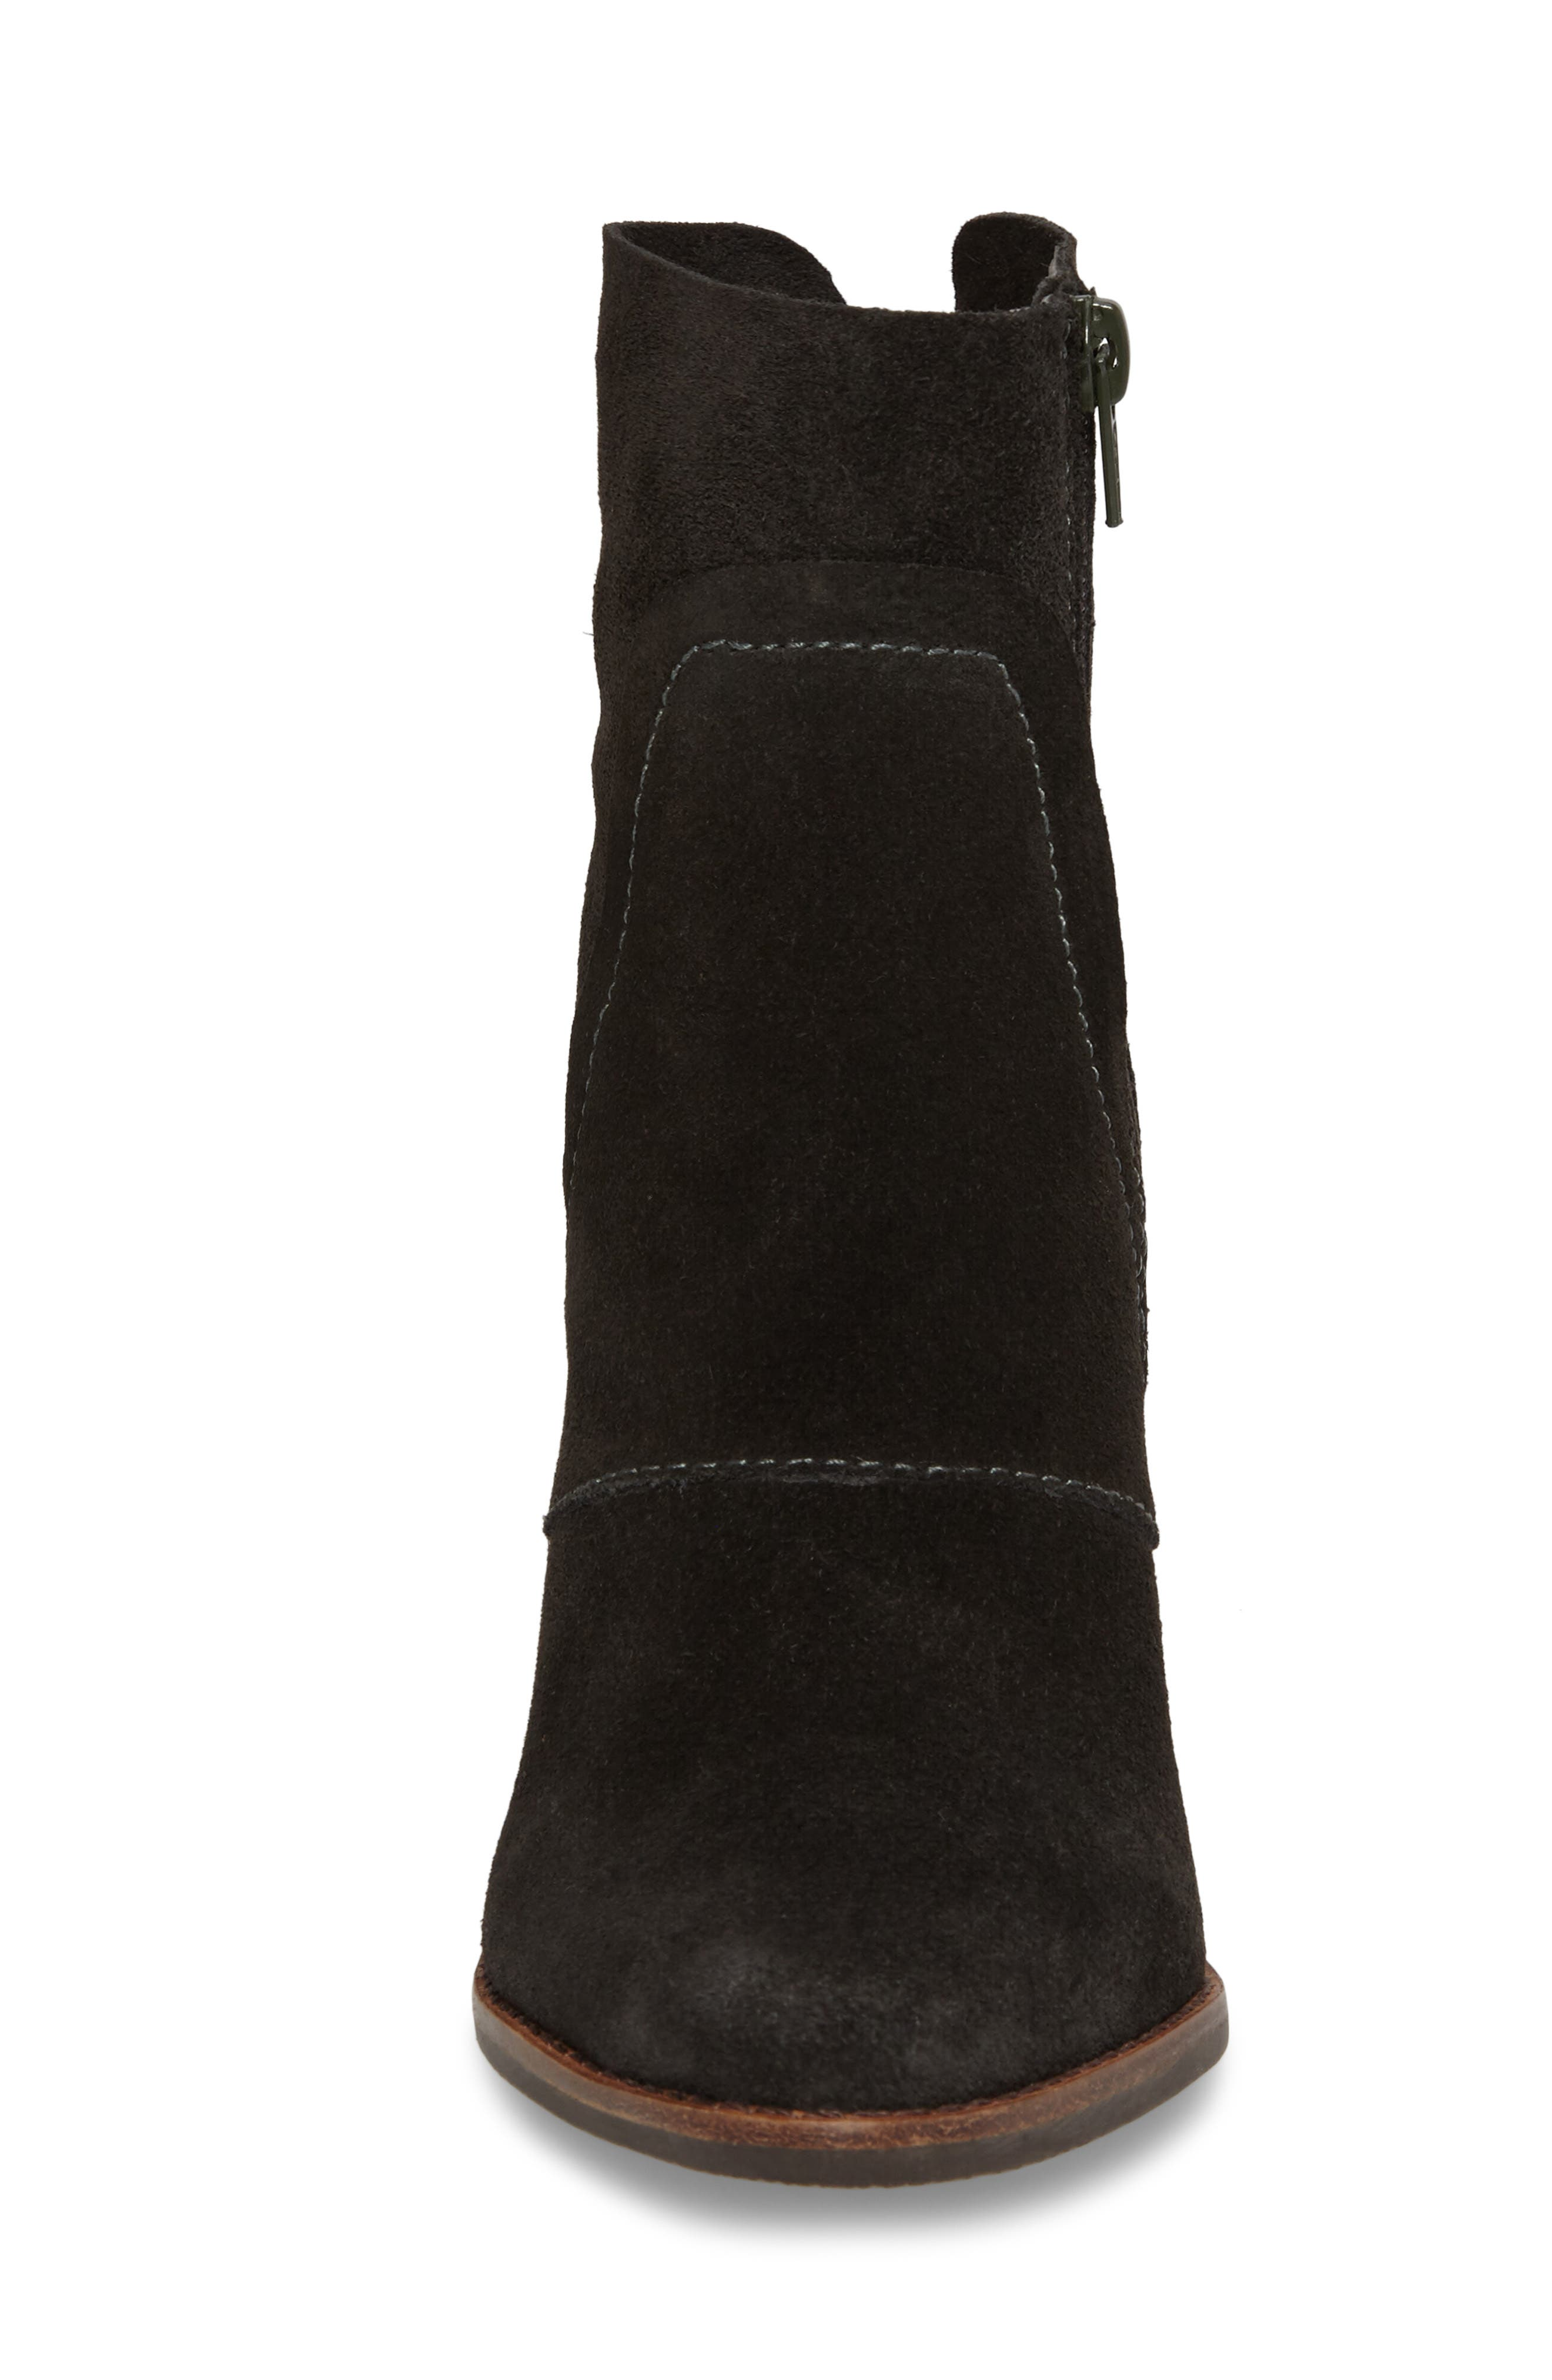 Laney Notched Heel Bootie,                             Alternate thumbnail 4, color,                             Forest Suede